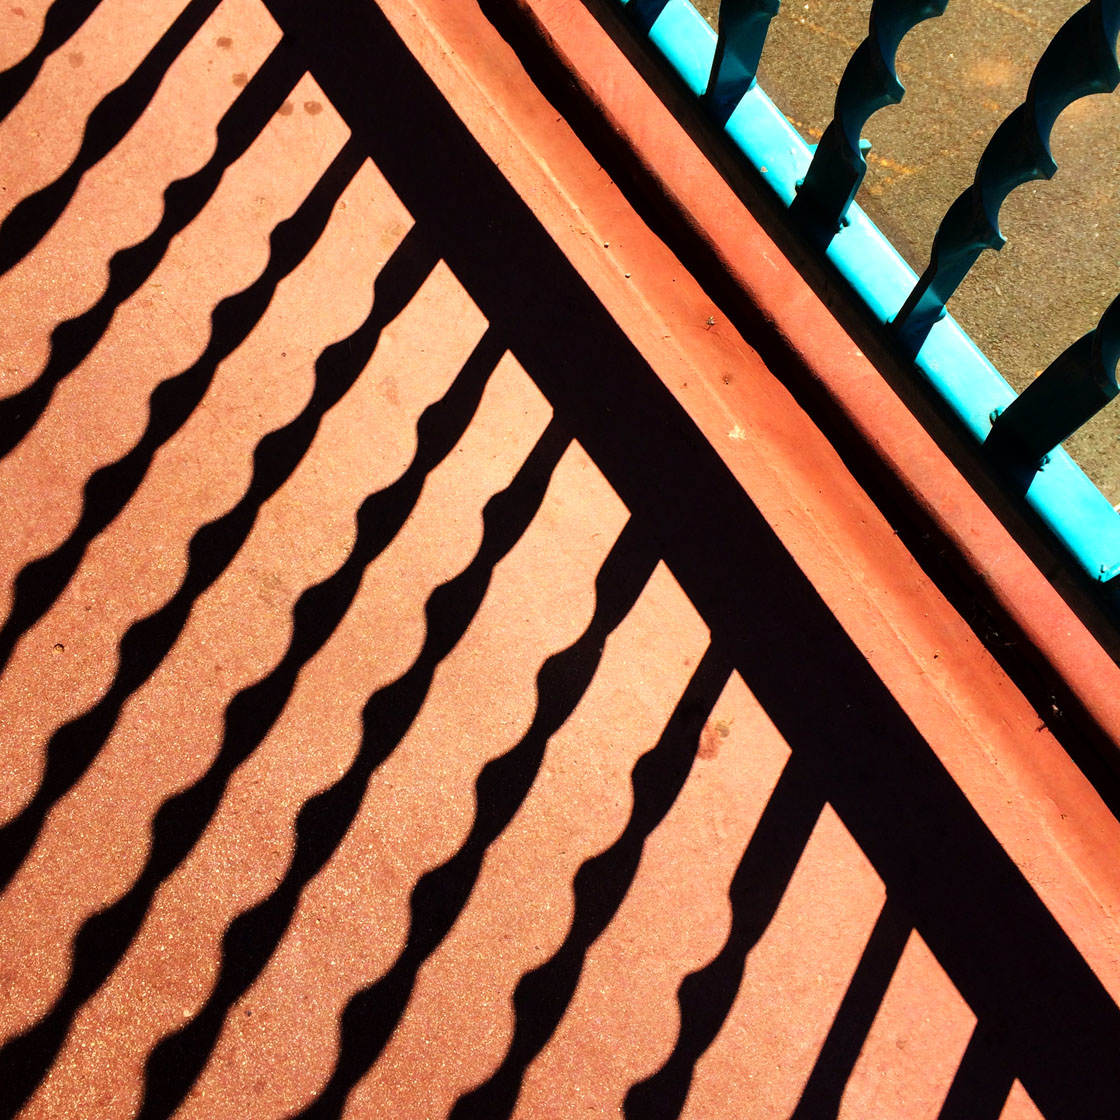 Abstract iPhone Photos 20 no script